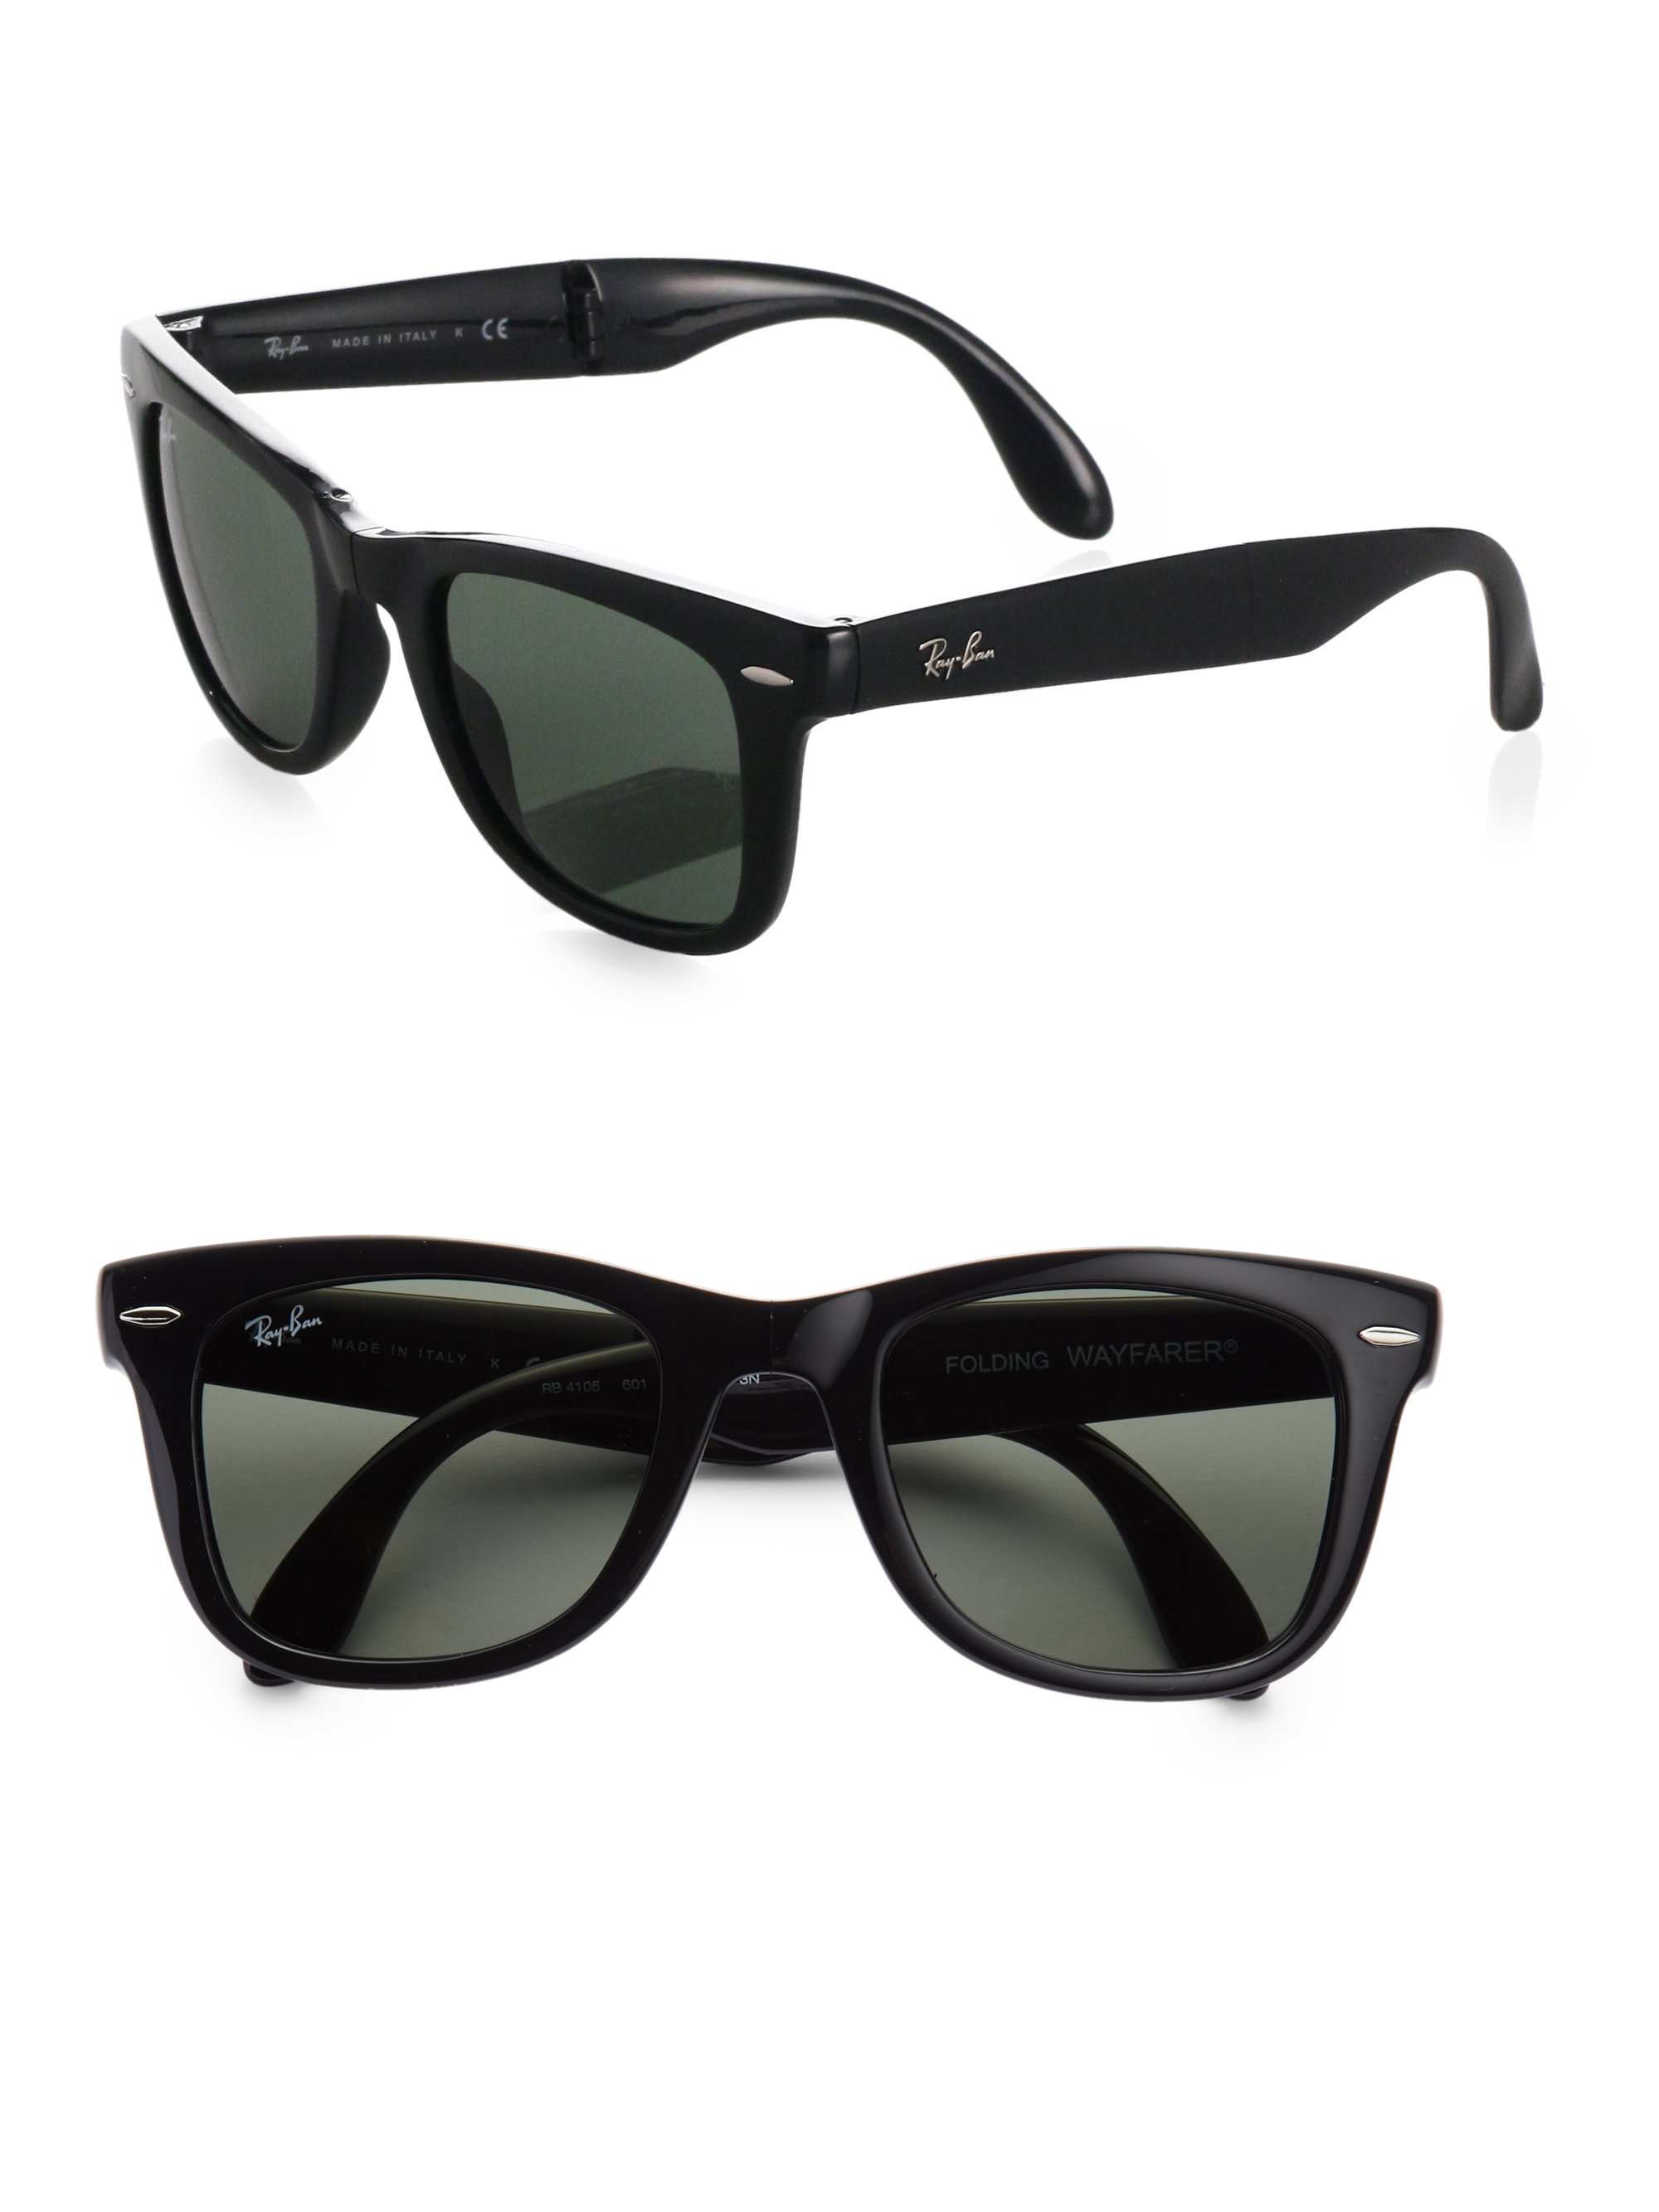 ff88c0719e Folding Wayfarer Sunglasses Polarized